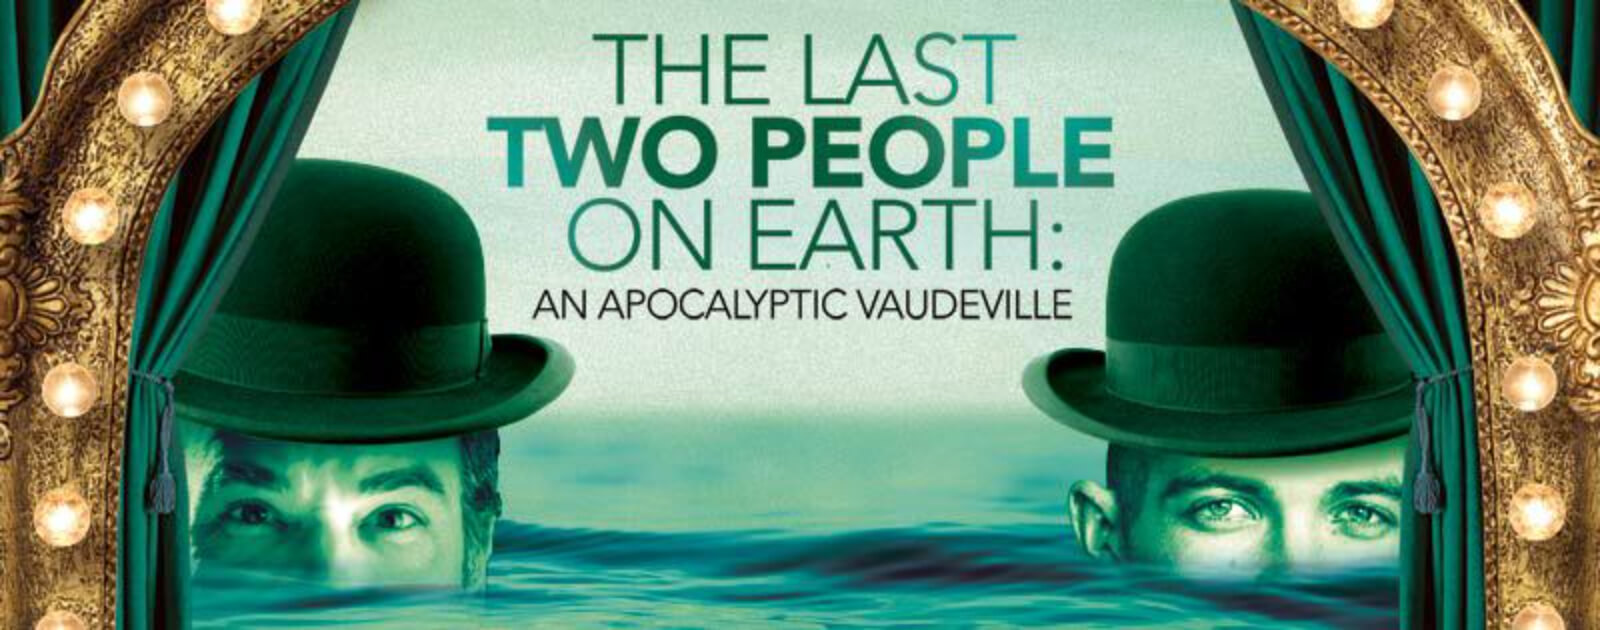 Logo of The Last Two People on Earth: An Apocalyptic Vaudeville. Mandy Patinkin and Taylor Mac are in water up to their noses. They both are wearing black derby hats.